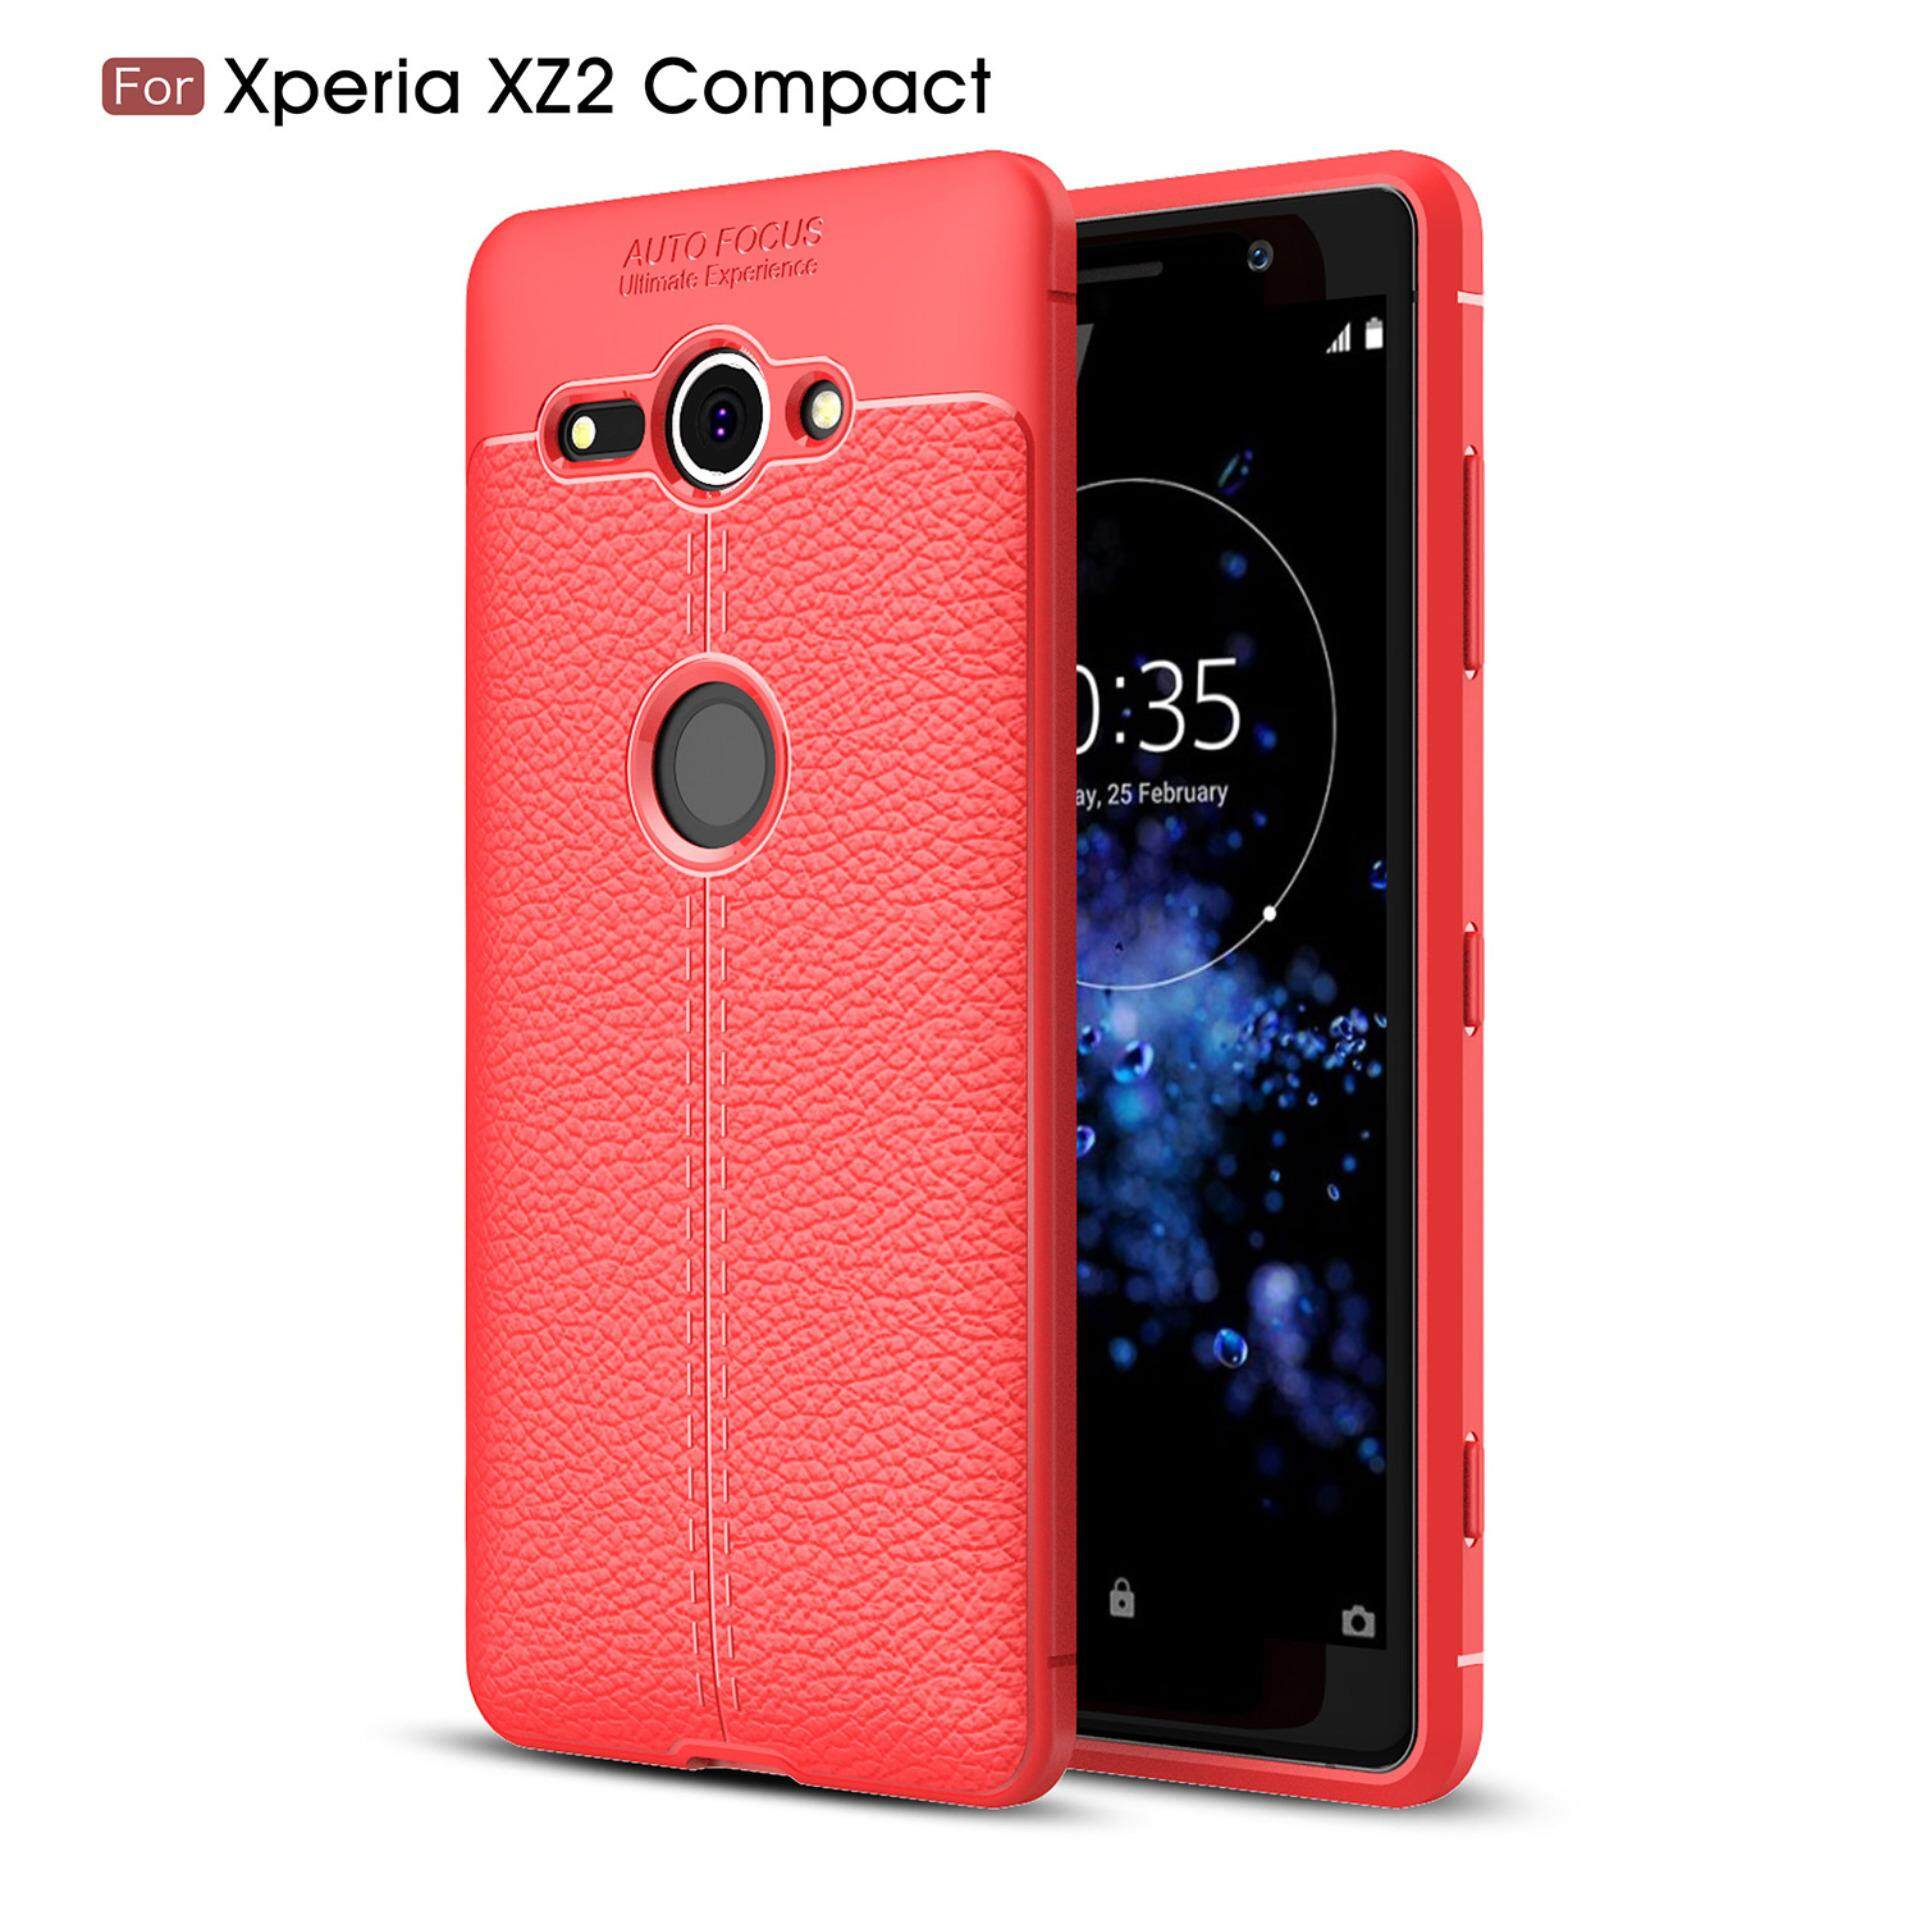 Sony Xperia XZ2 Compact Case, Kunpon 3D Skin Painting Non Slip Armor Shock Absorption Carbon Fiber Texture Soft TPU Leather Full Protection Phone Case Cover Casing for Sony Xperia XZ2 Compact - intl